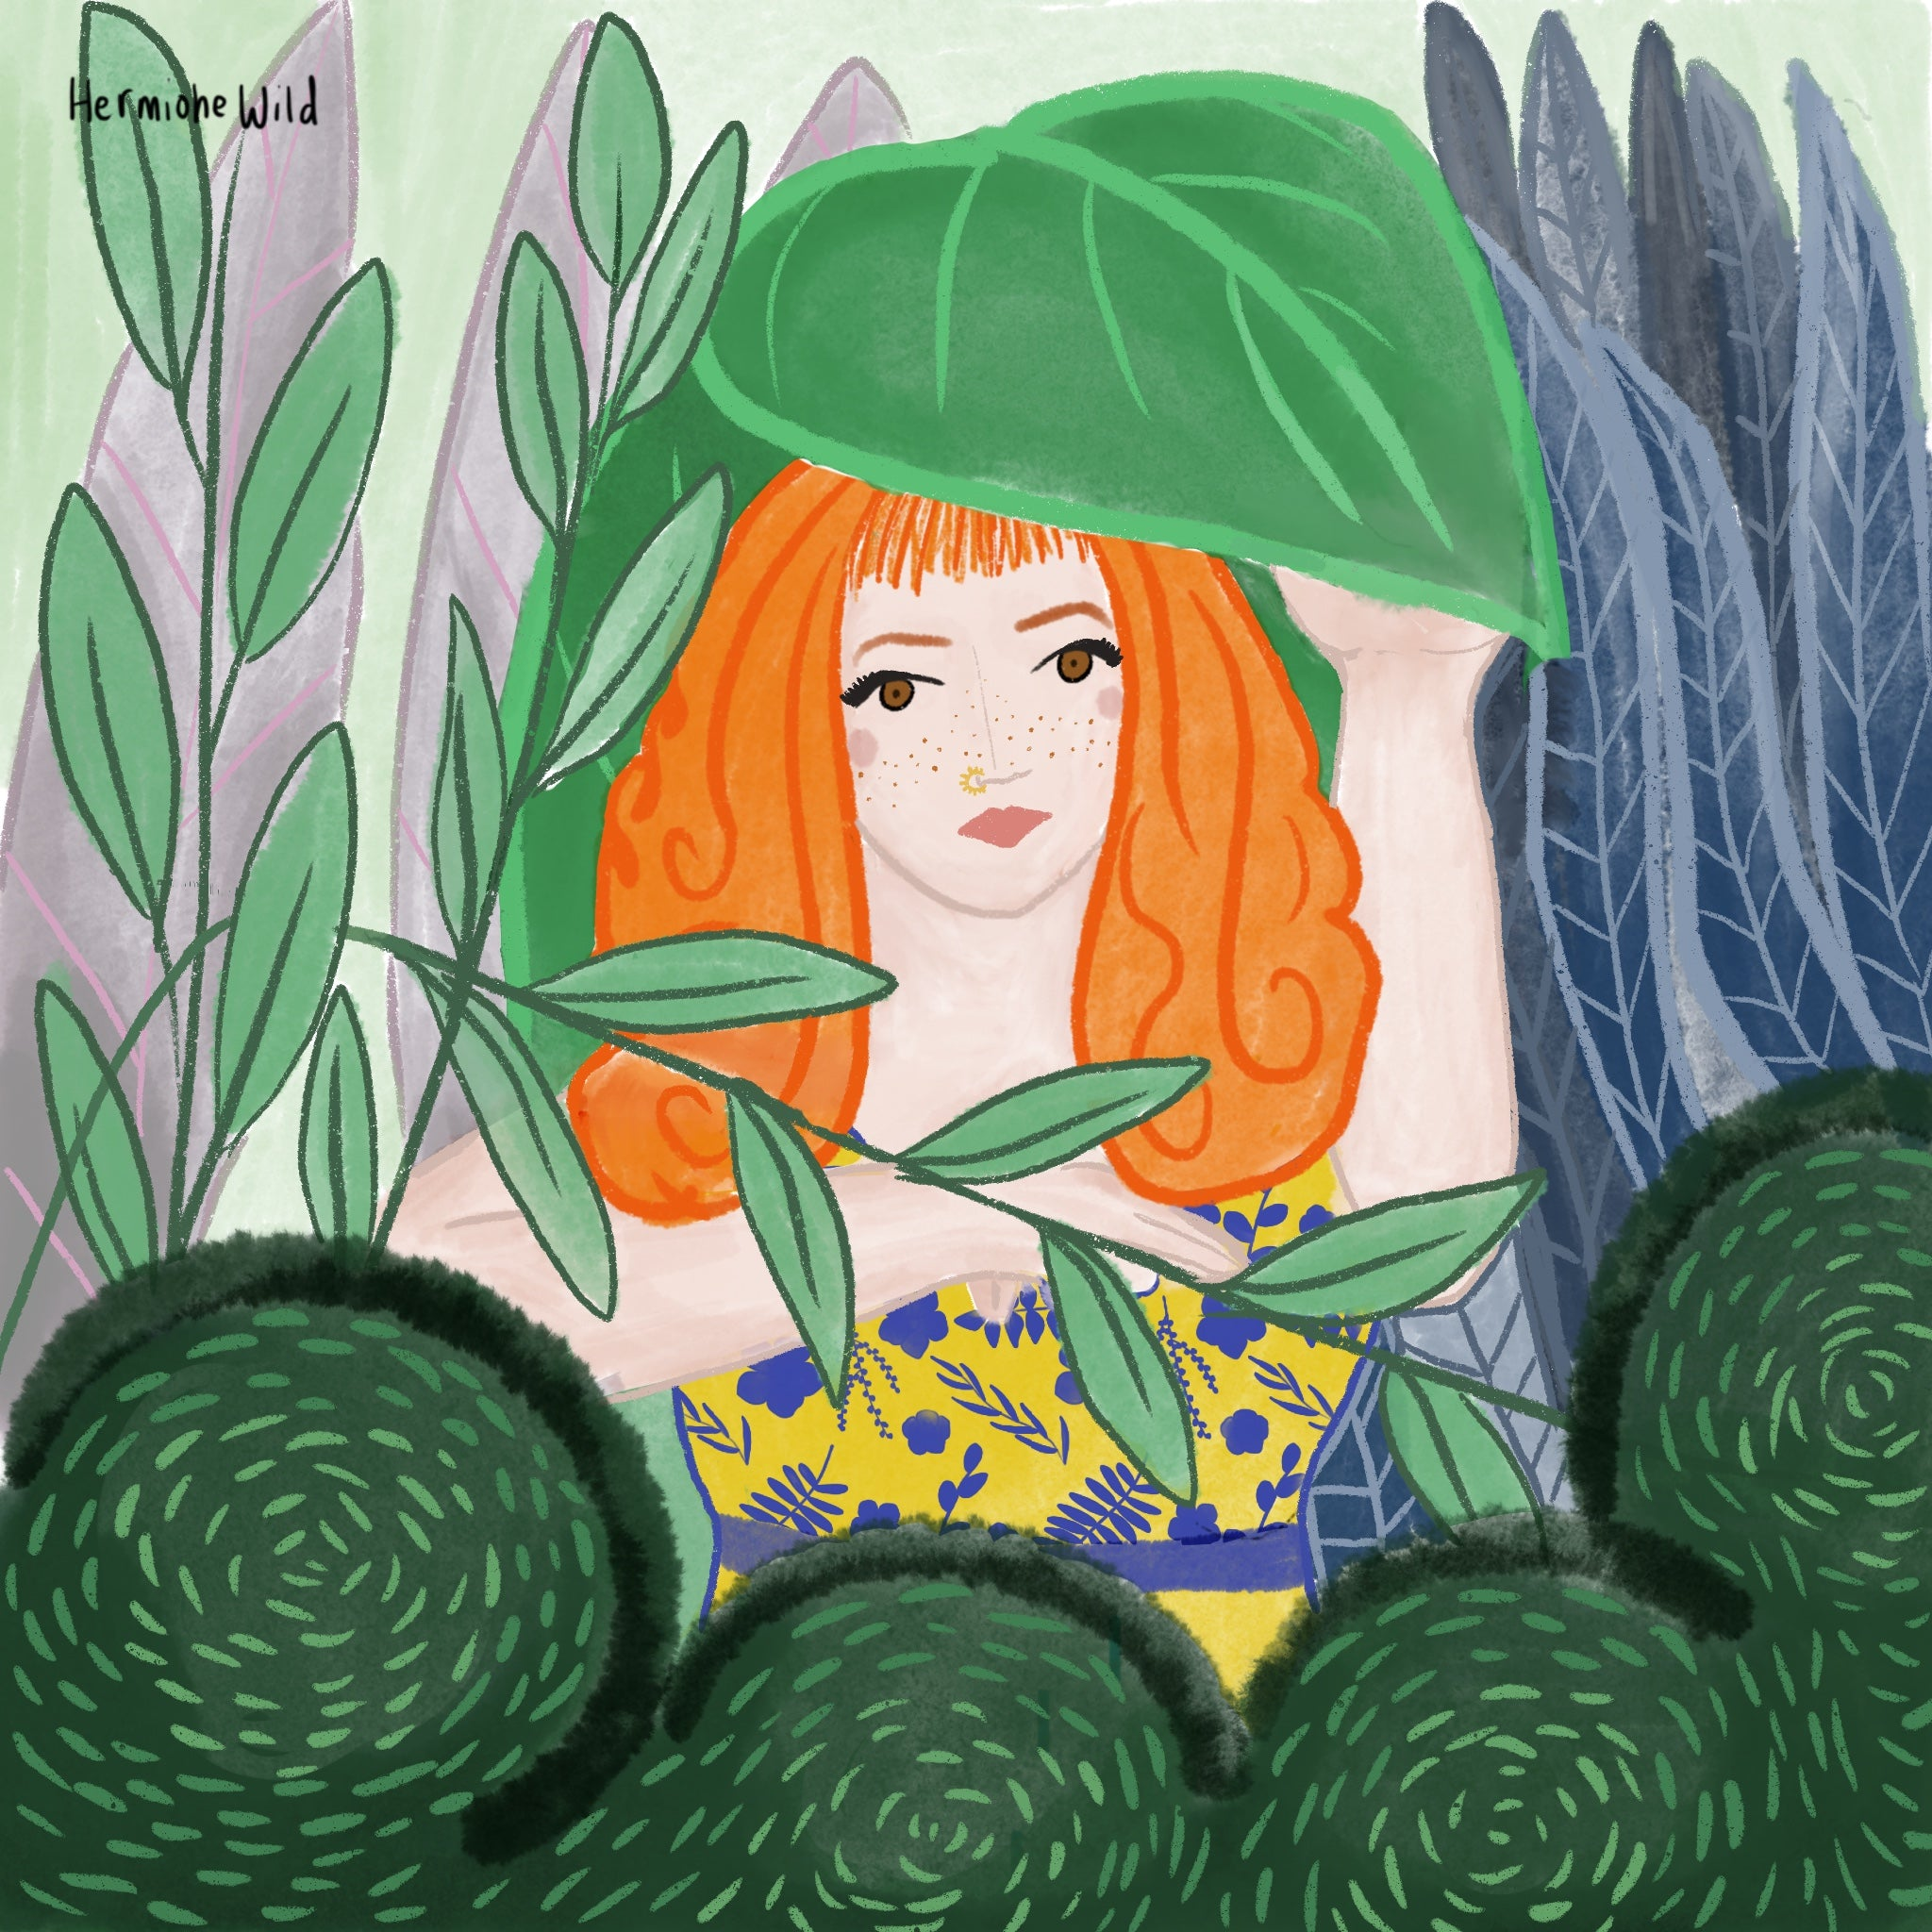 Red haired woman peering out from behind plants